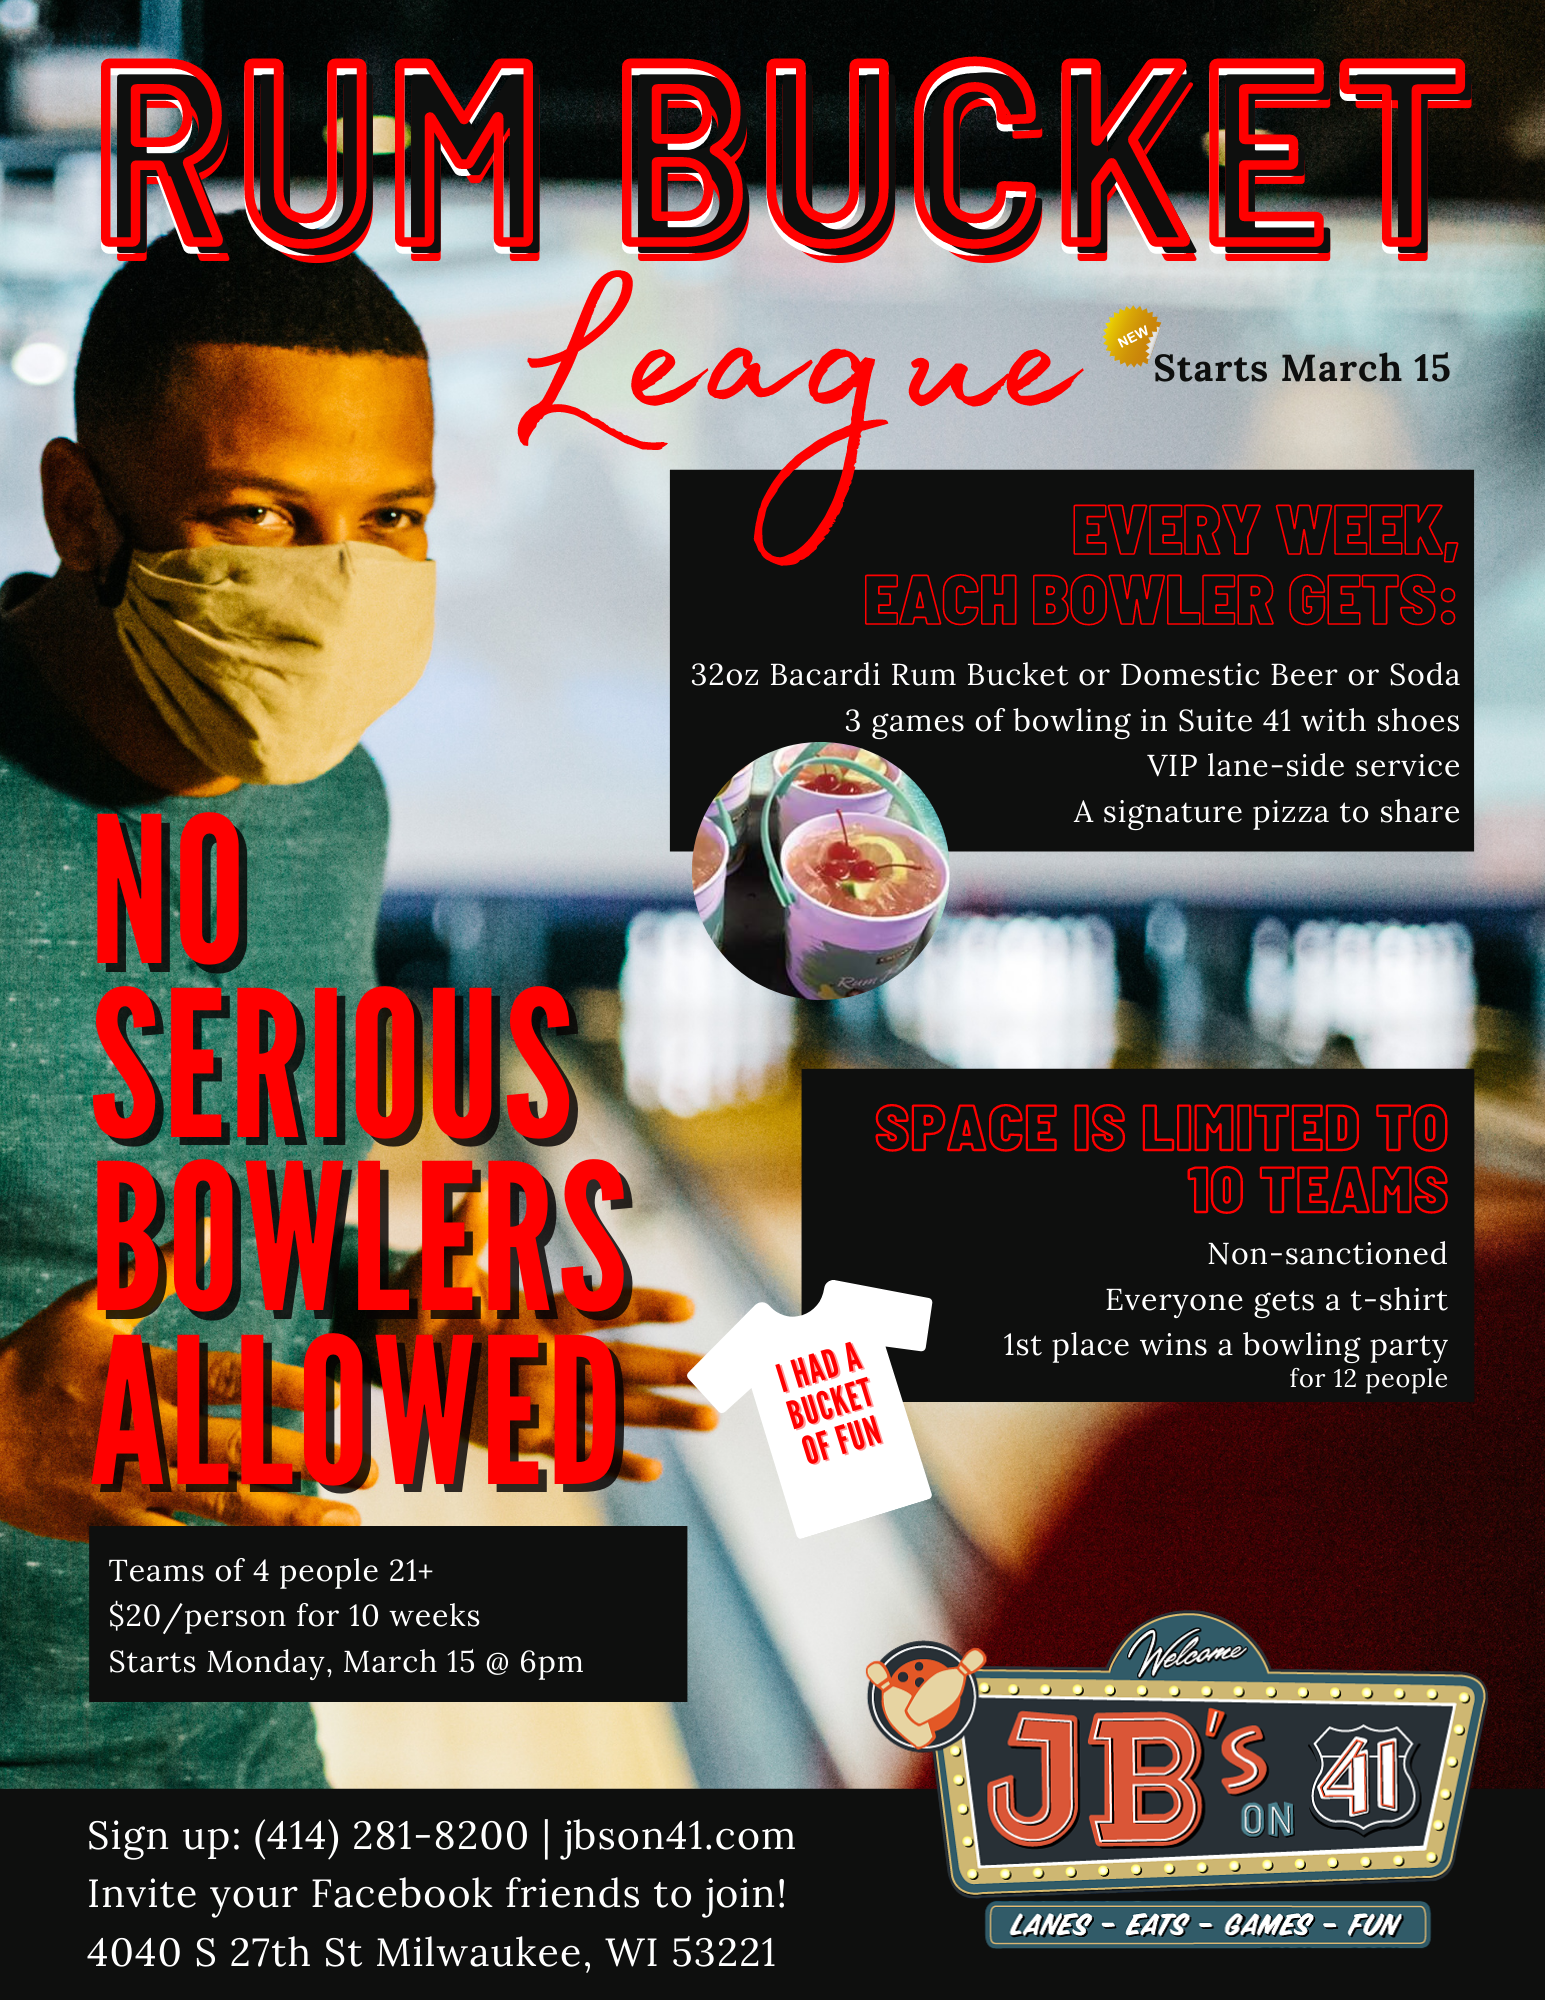 no serious bowlers allowed club | rum bucket league | social adult leagues | bowling leagues | JB's on 41 | Milwaukee, WI